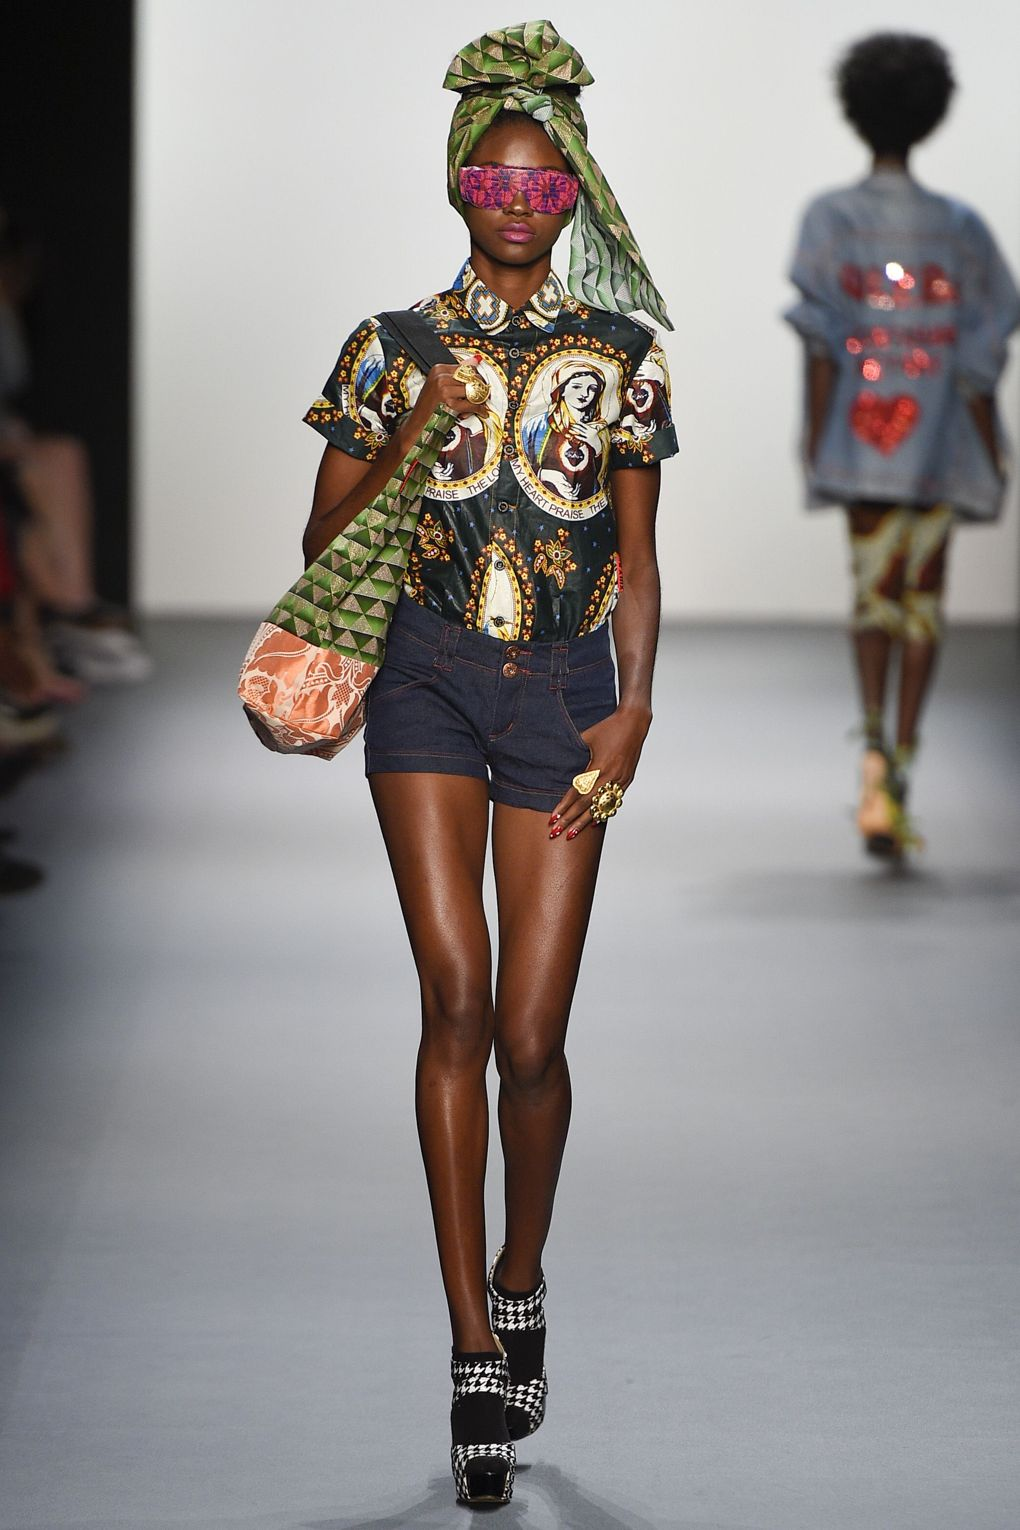 fashion-week-xuly-be%cc%88t-xuly-be%cc%88t-sprigsummer-2016-ready-to-wear-collection-9